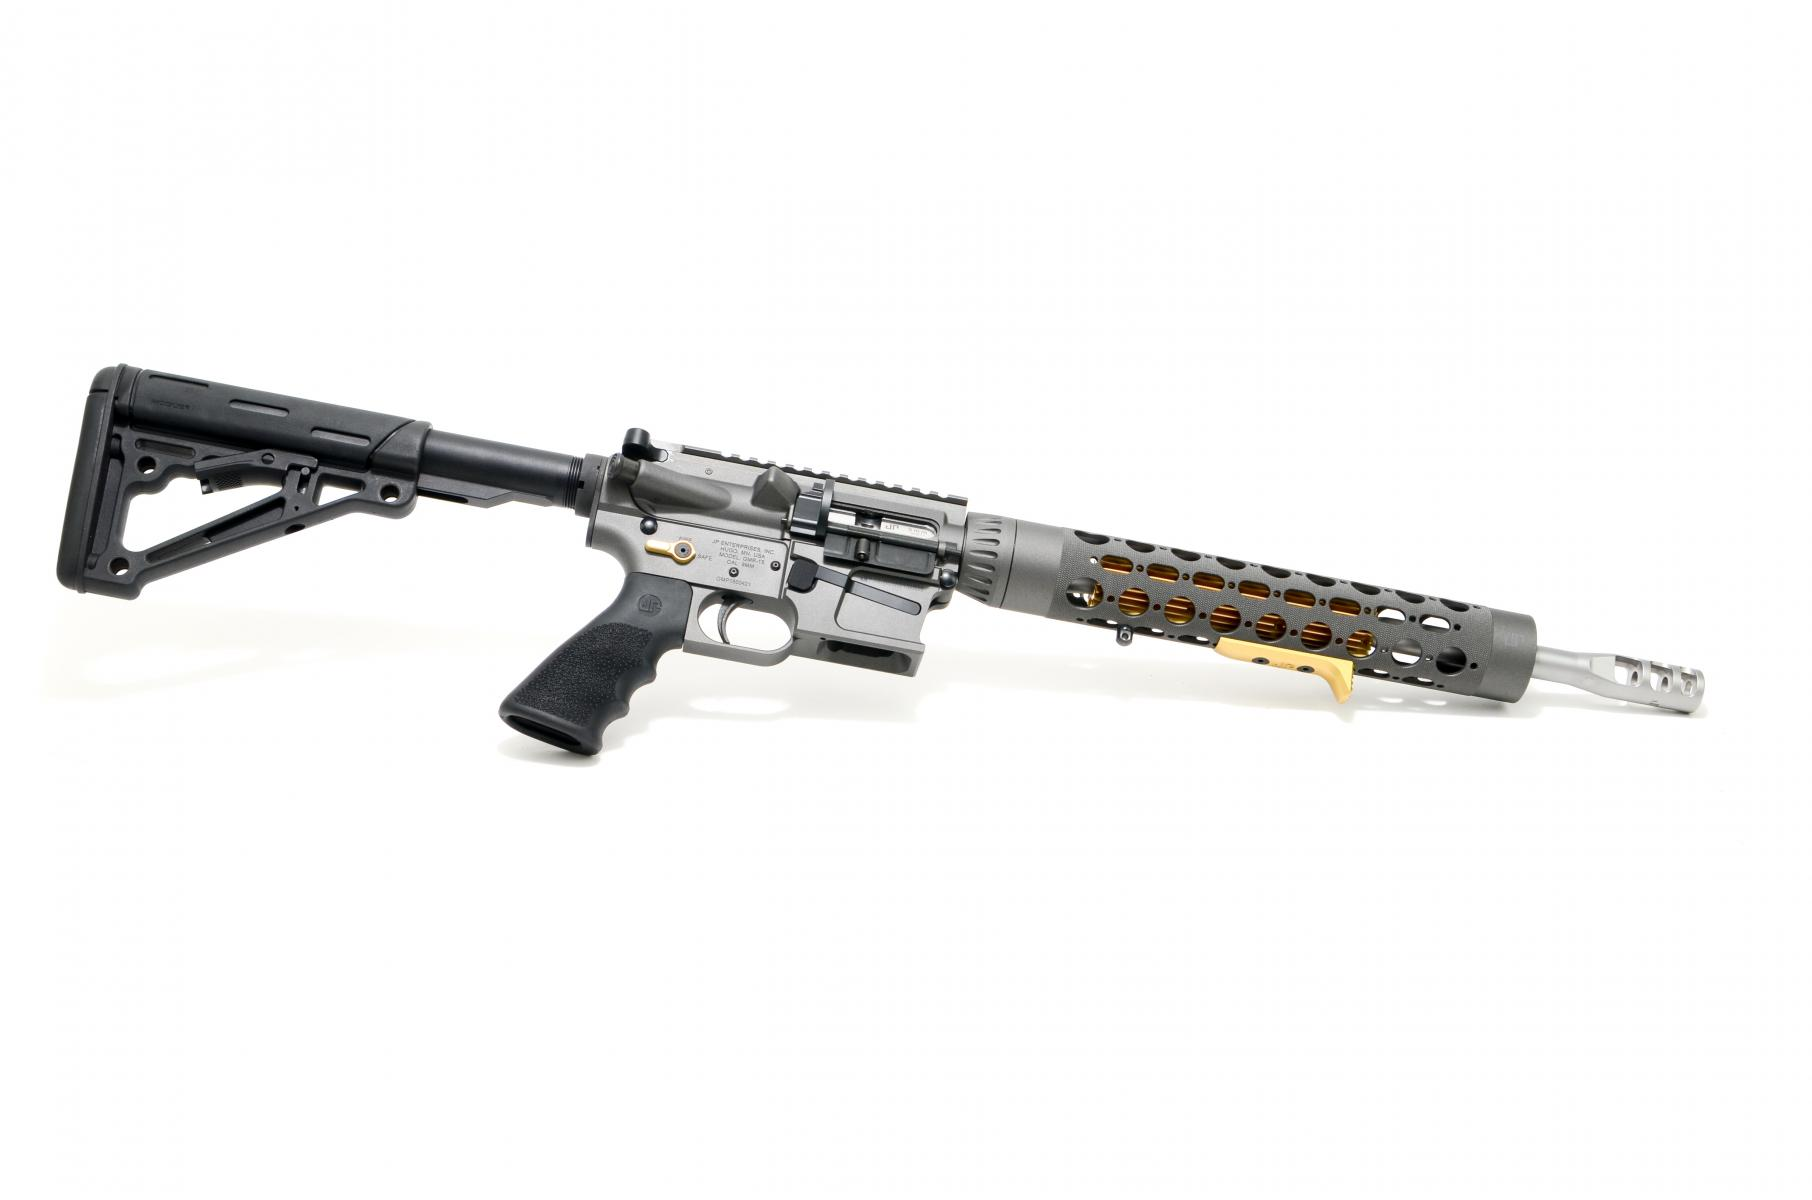 "JP GMR-15 Rifle |9mm 14.5"" Matte Bead Blast Stainless Barrel, Gray Cerakote, 12.5"" RC Handguard, Gold Thermal Dissipator / Controls, Carbine Silent Captured Recoil Spring, 3-Port Comp, Hogue Stock, JP Trigger, Soft Case, 10 Round Glock Magazine"